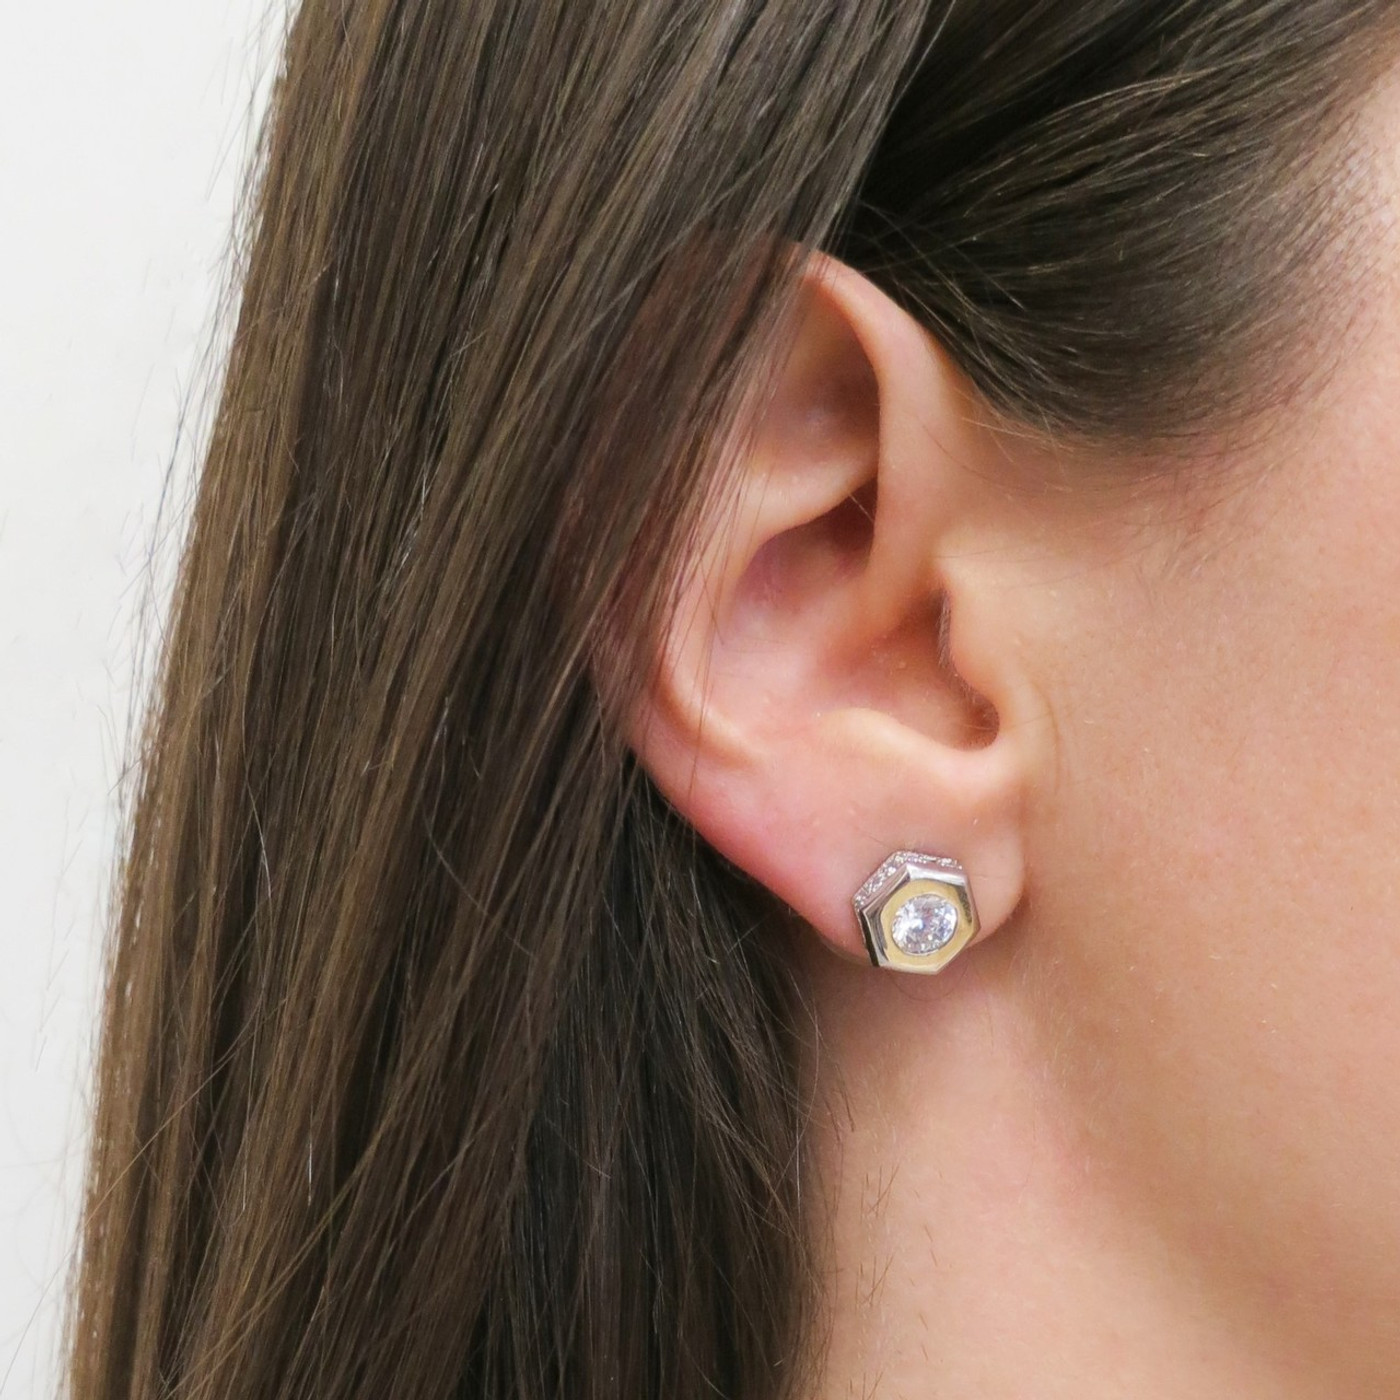 The Nut Stud Earring